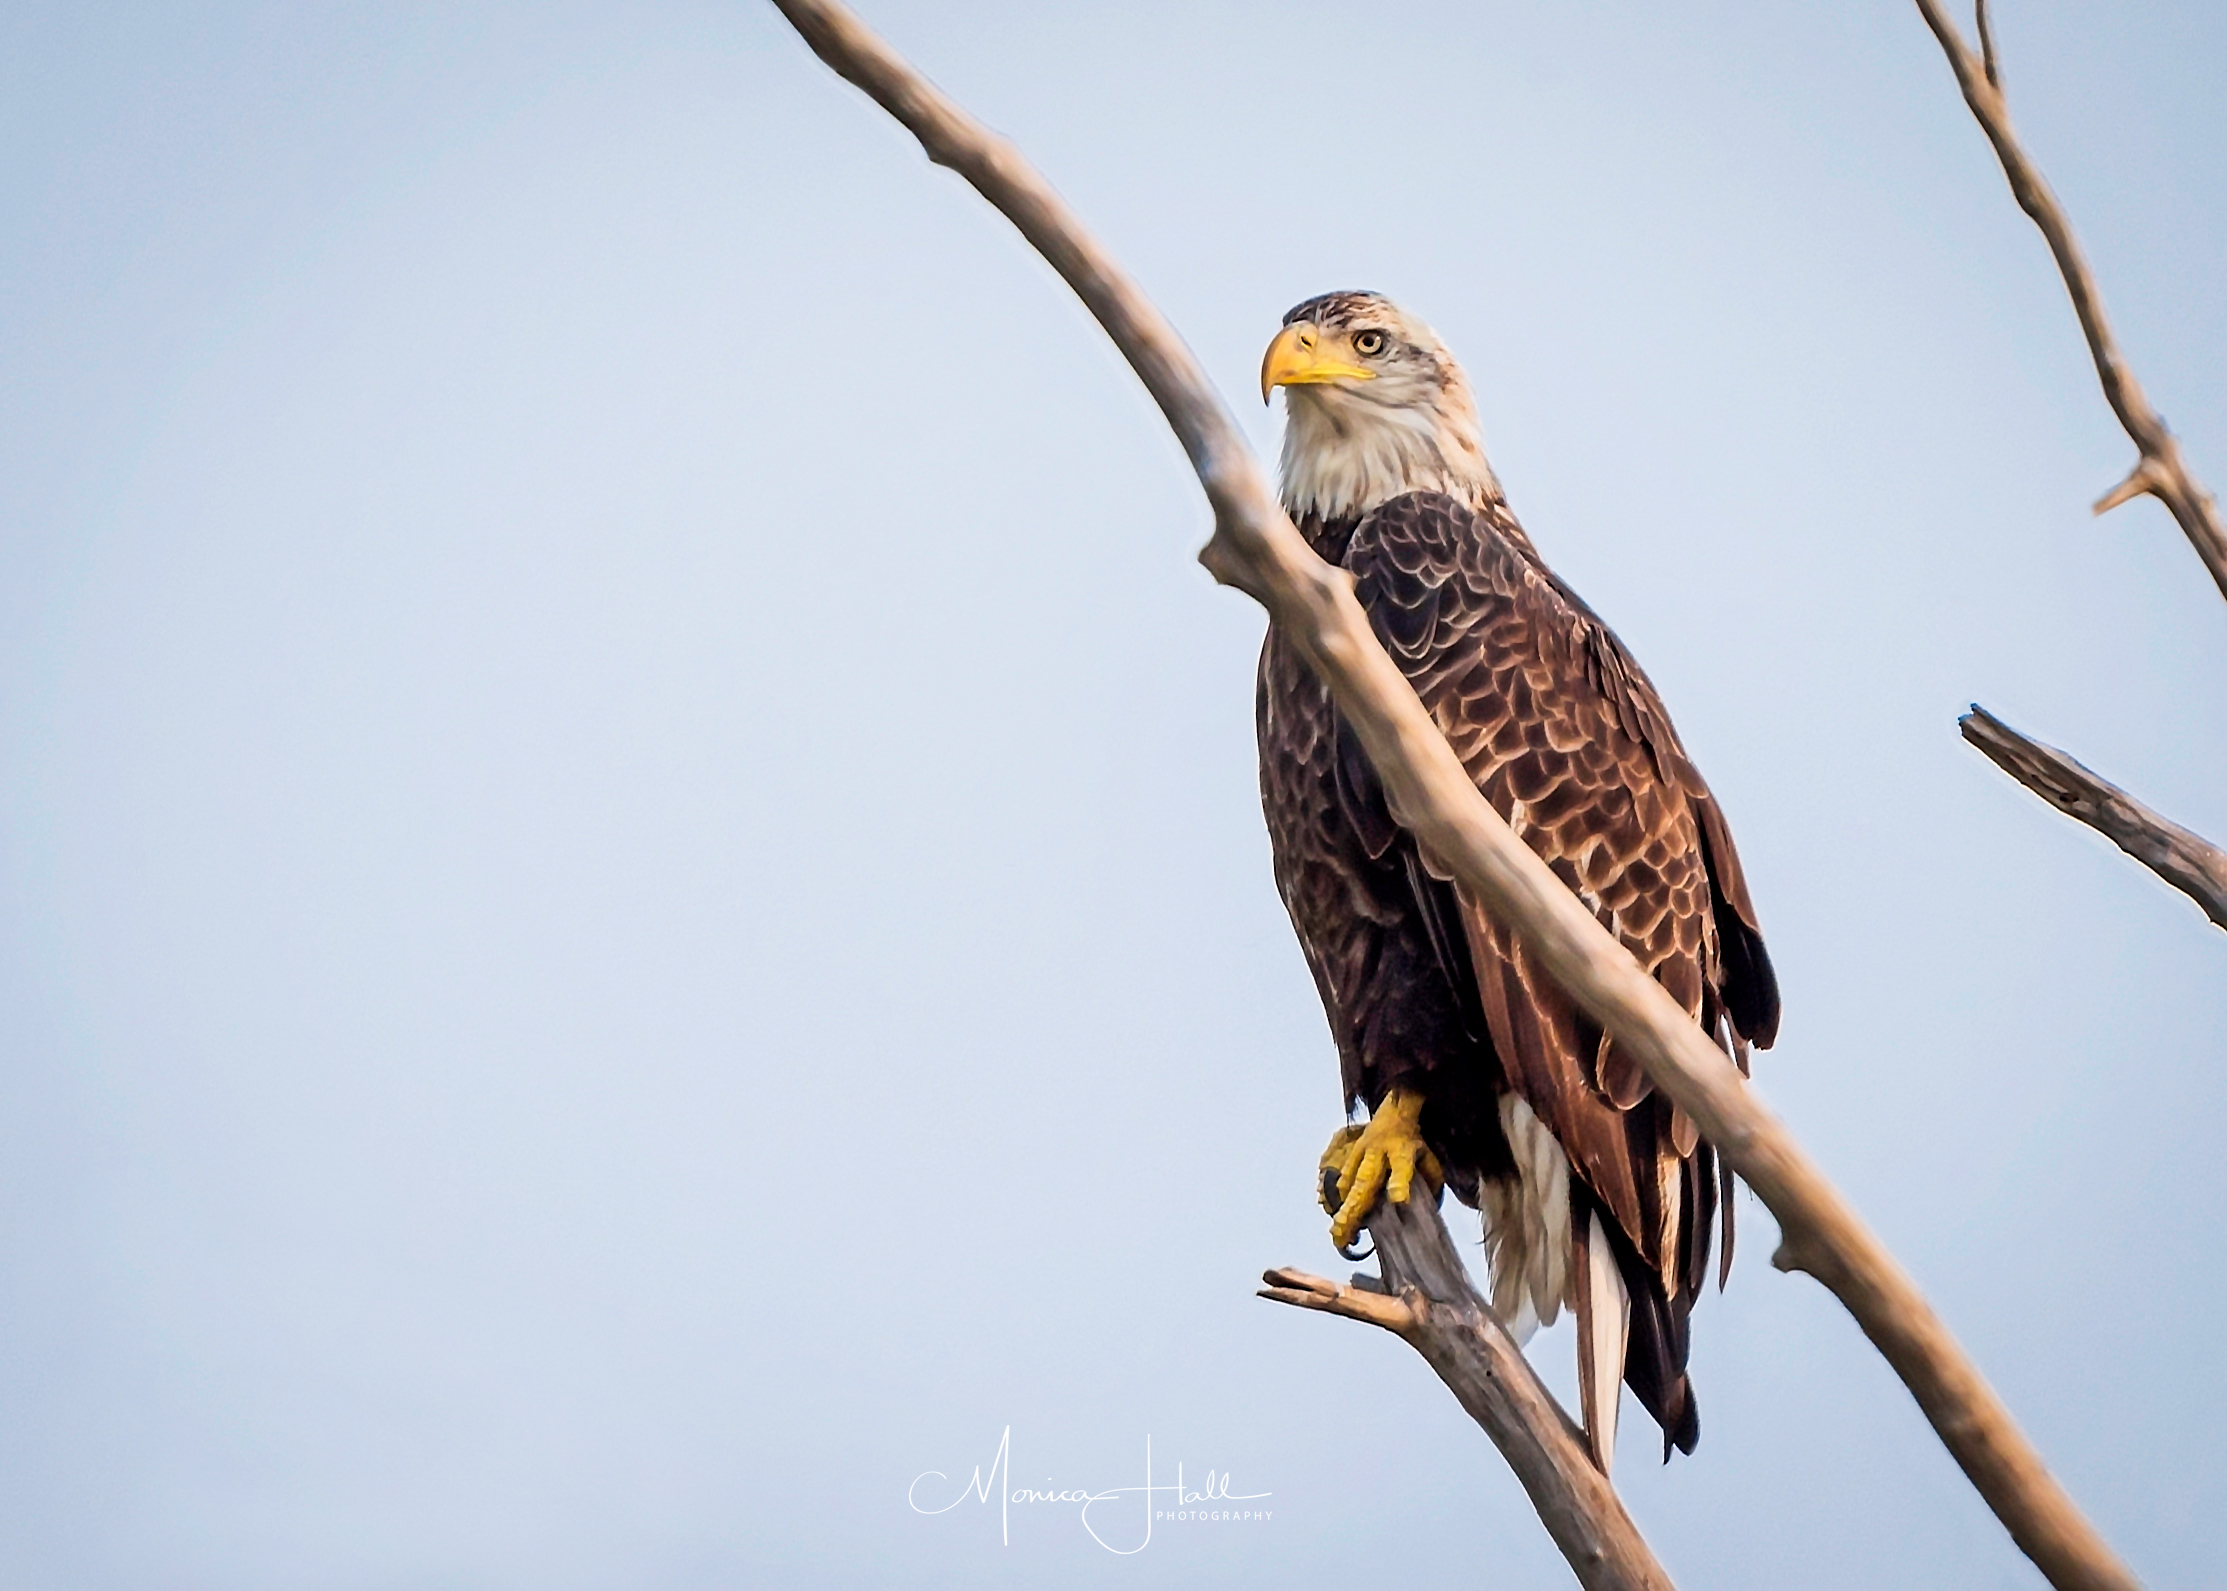 A perched baldie looking quite stately. Photo by Monica Hall